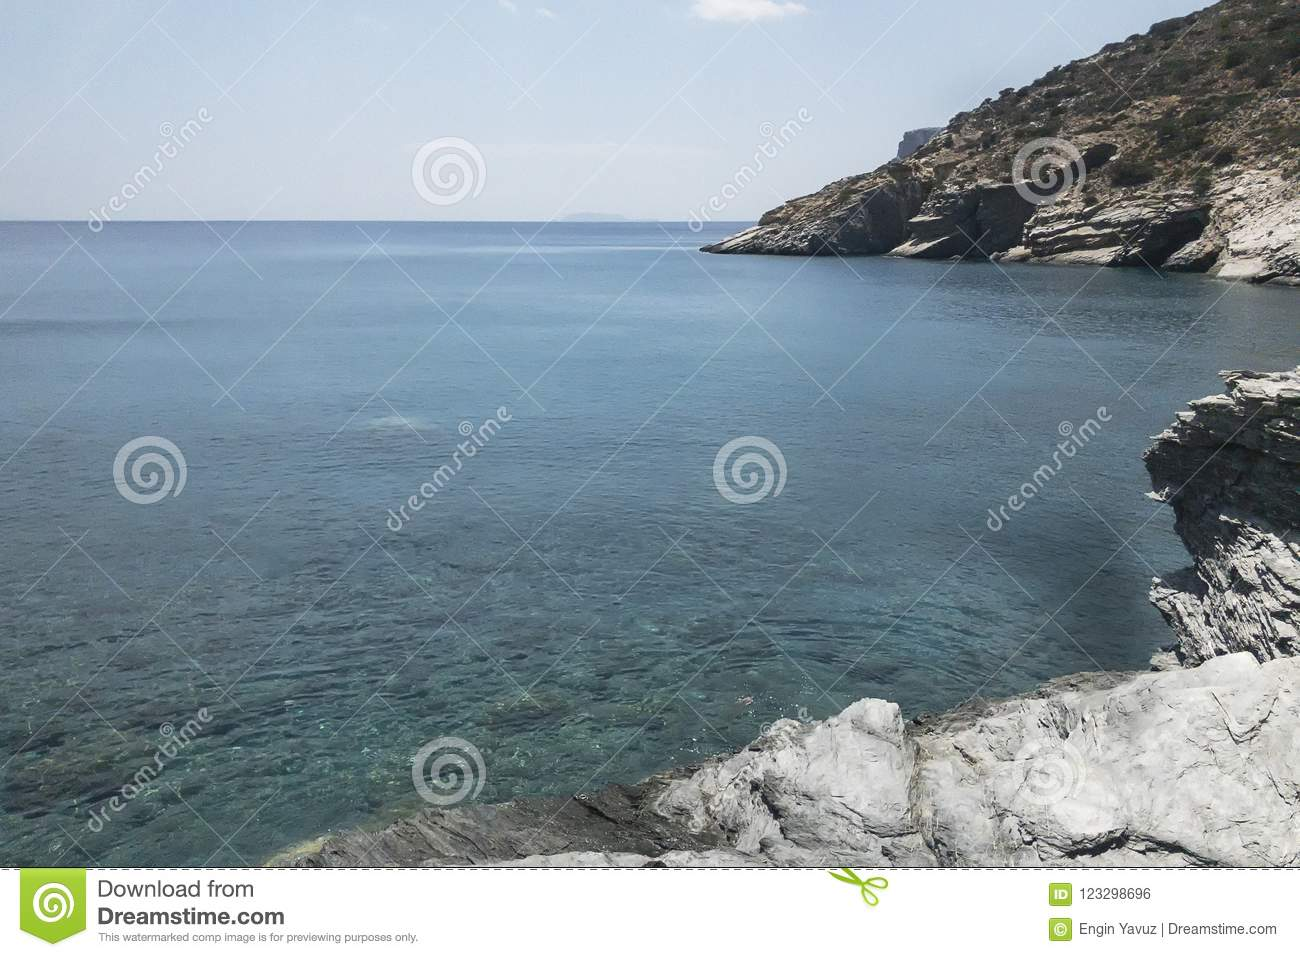 Mouros beach from virgin beaches of Amorgos island, one of the most beautiful of the Cyclades islands